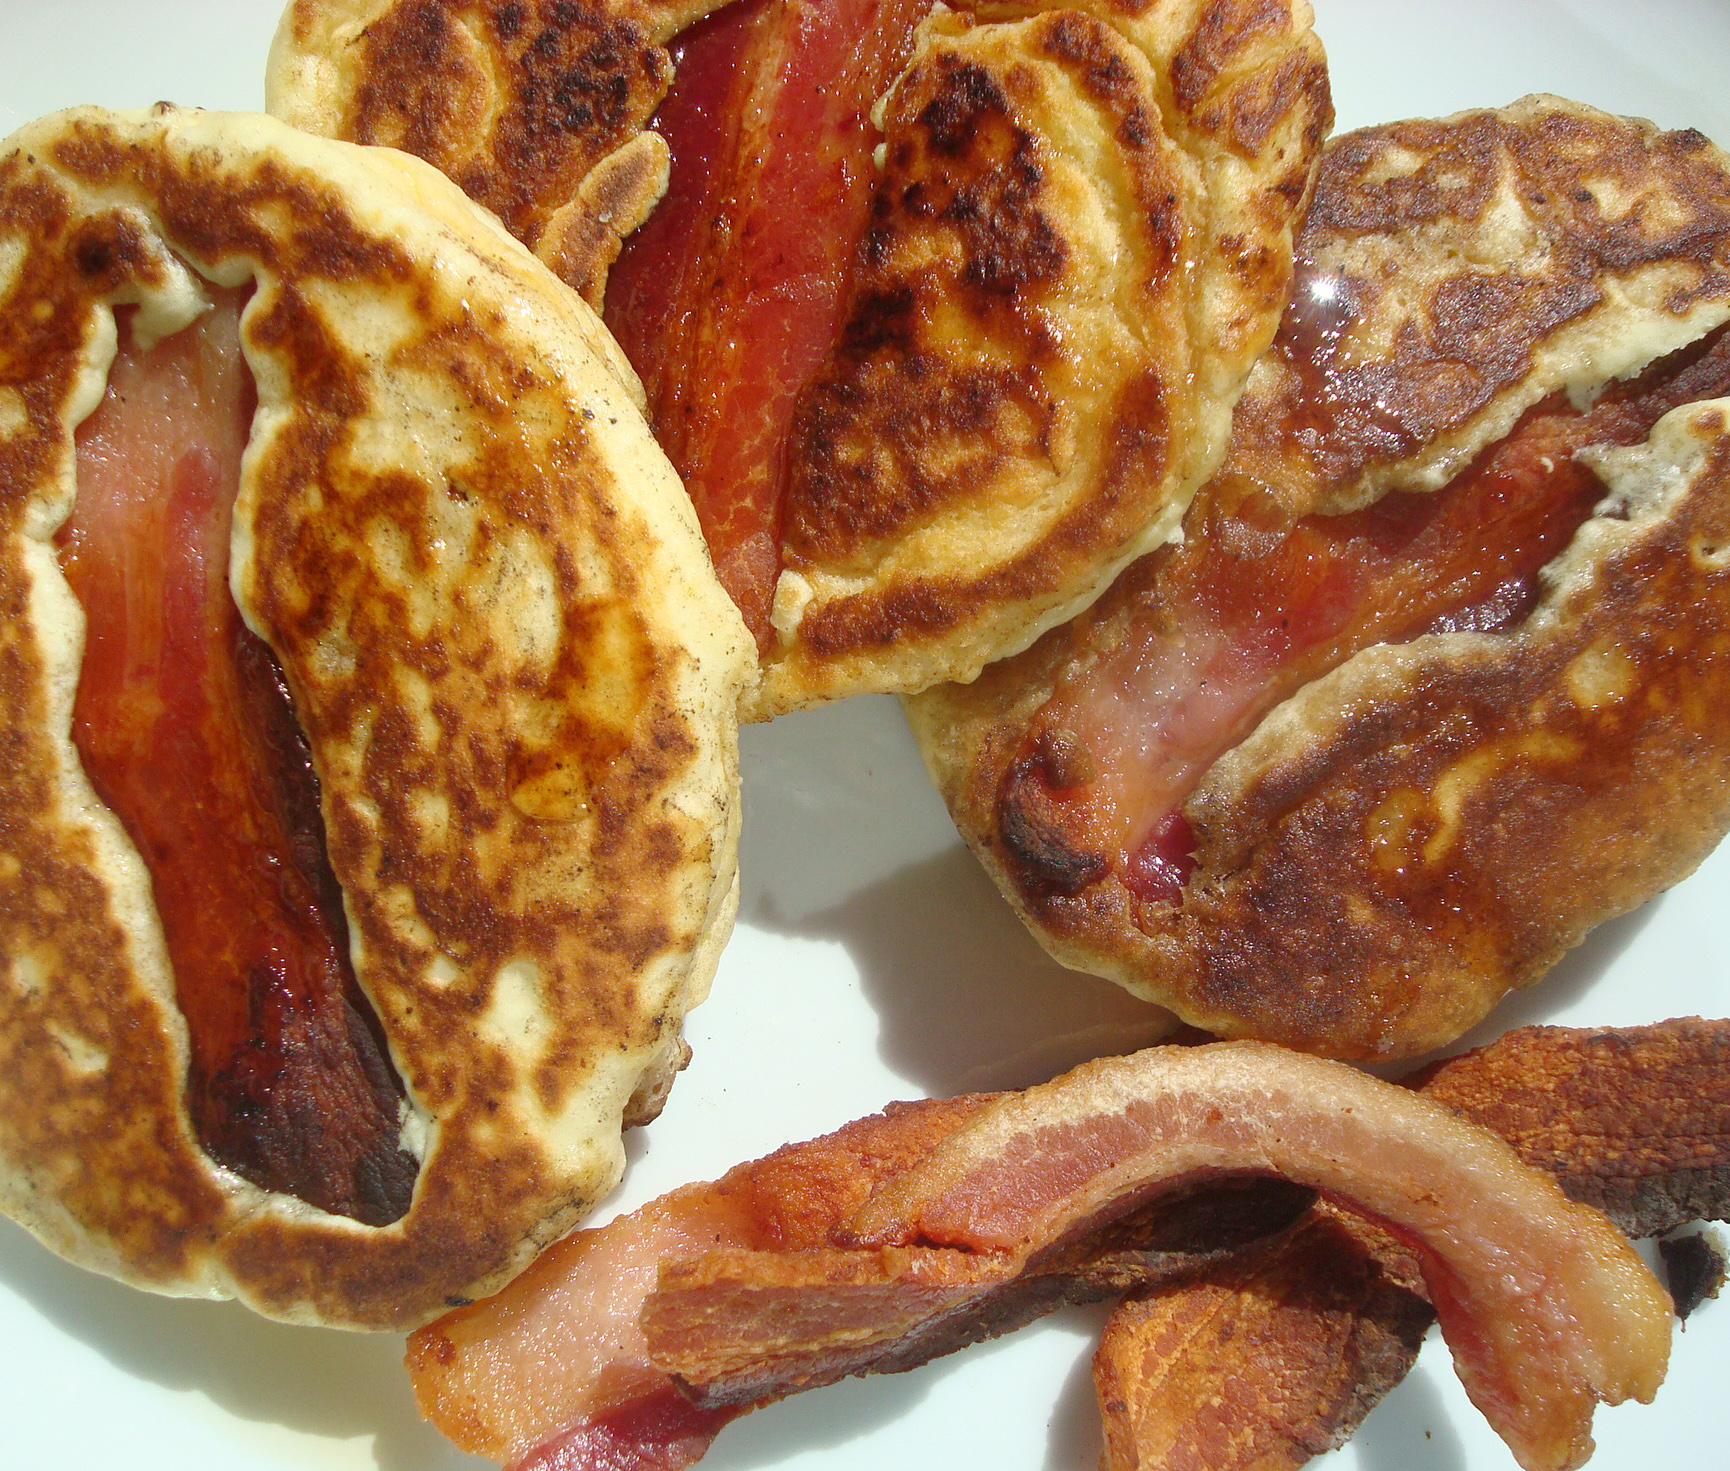 Filled with bacon, these pancakes are a breakfast delight